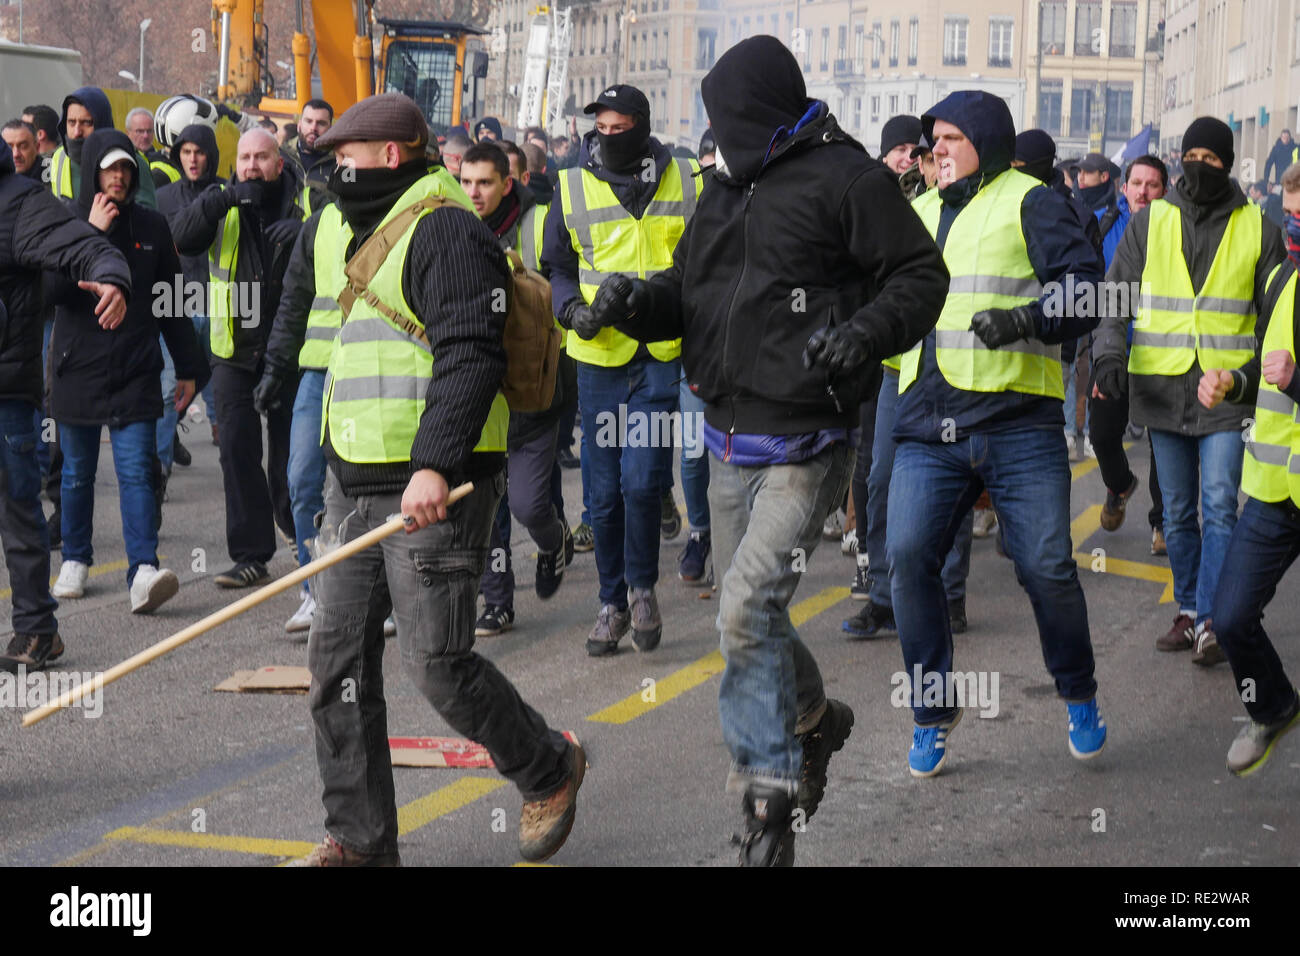 Lyon, France, January 19th 2019: Vioences occured between Far right activists and leftists as Yellow jackets take part to the 10th day of protest against french goverment reform projetct n Lyon (Central-Eastern France) on january 19, 2019. Credit Photo: Serge Mouraret/Alamy Live News - Stock Image